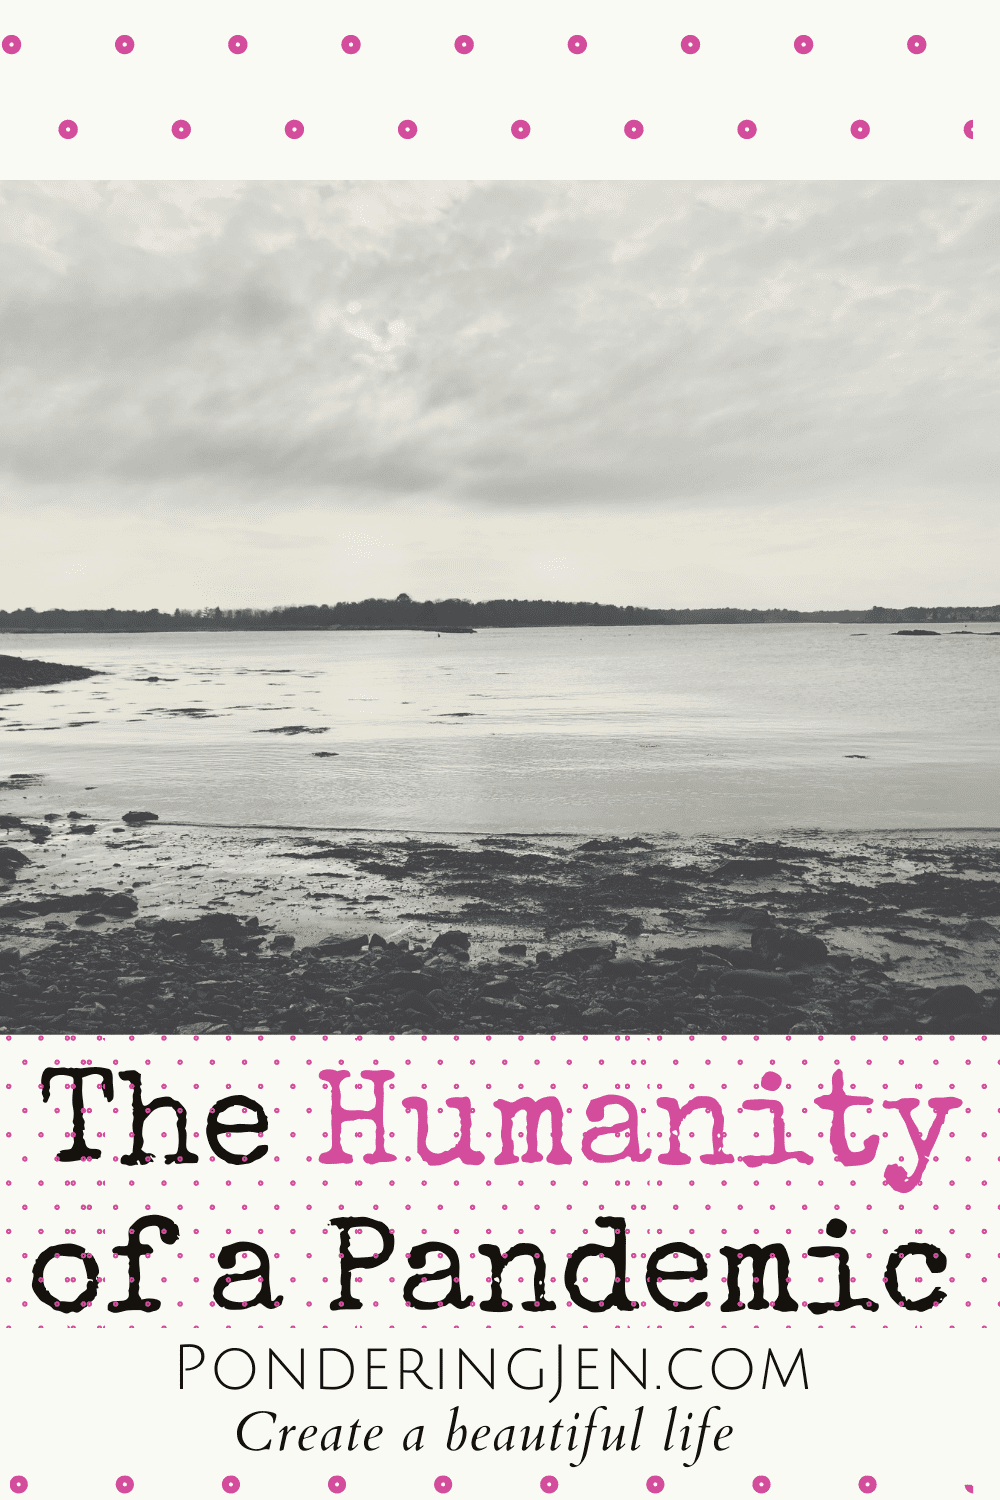 image of ocean with text the humanity of a pandemic